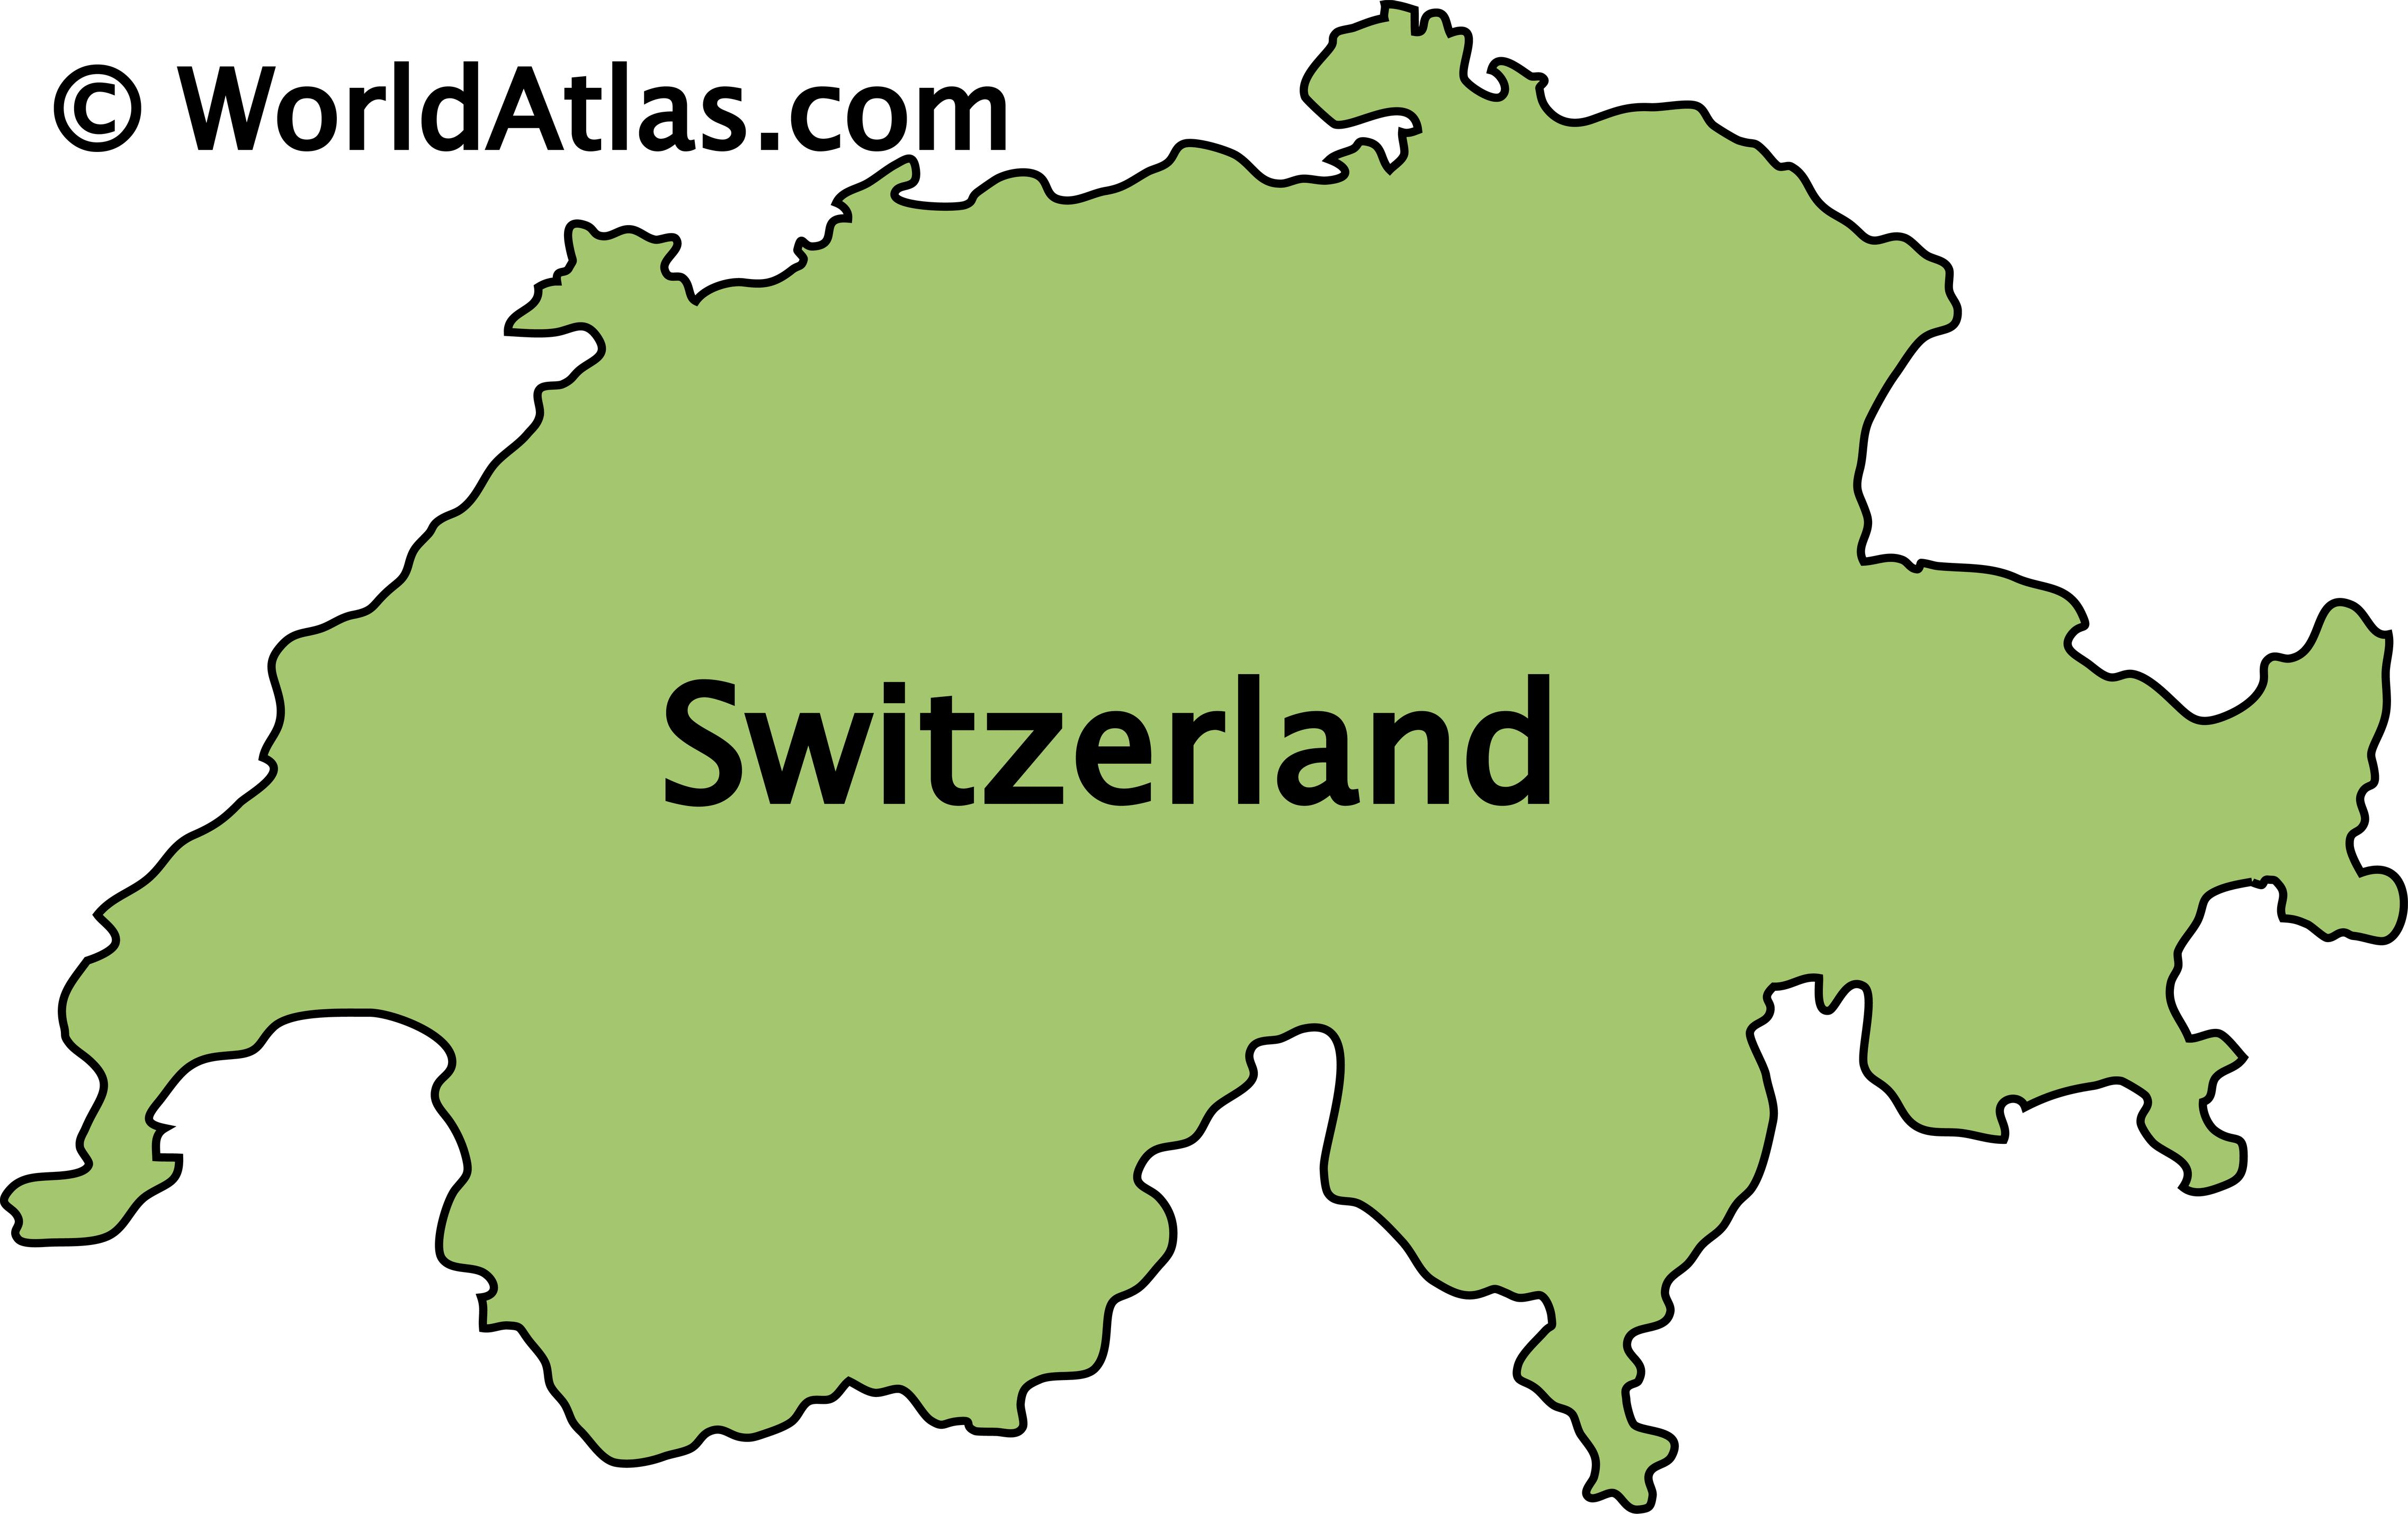 Outline Map of Switzerland